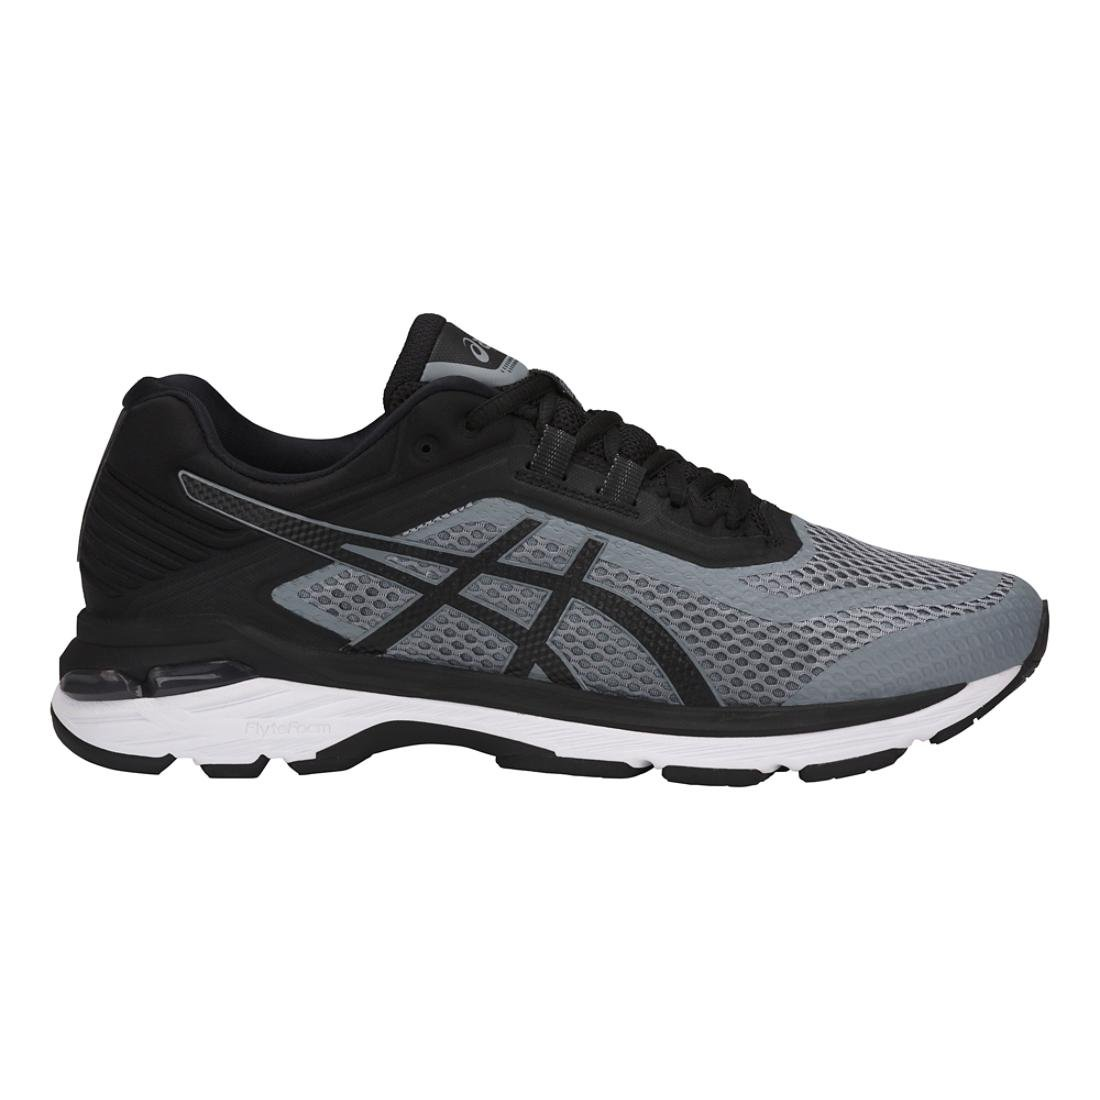 ASICS GT-2000 6 Men's Running Shoe, Stone Grey/Black/White, 6 M US